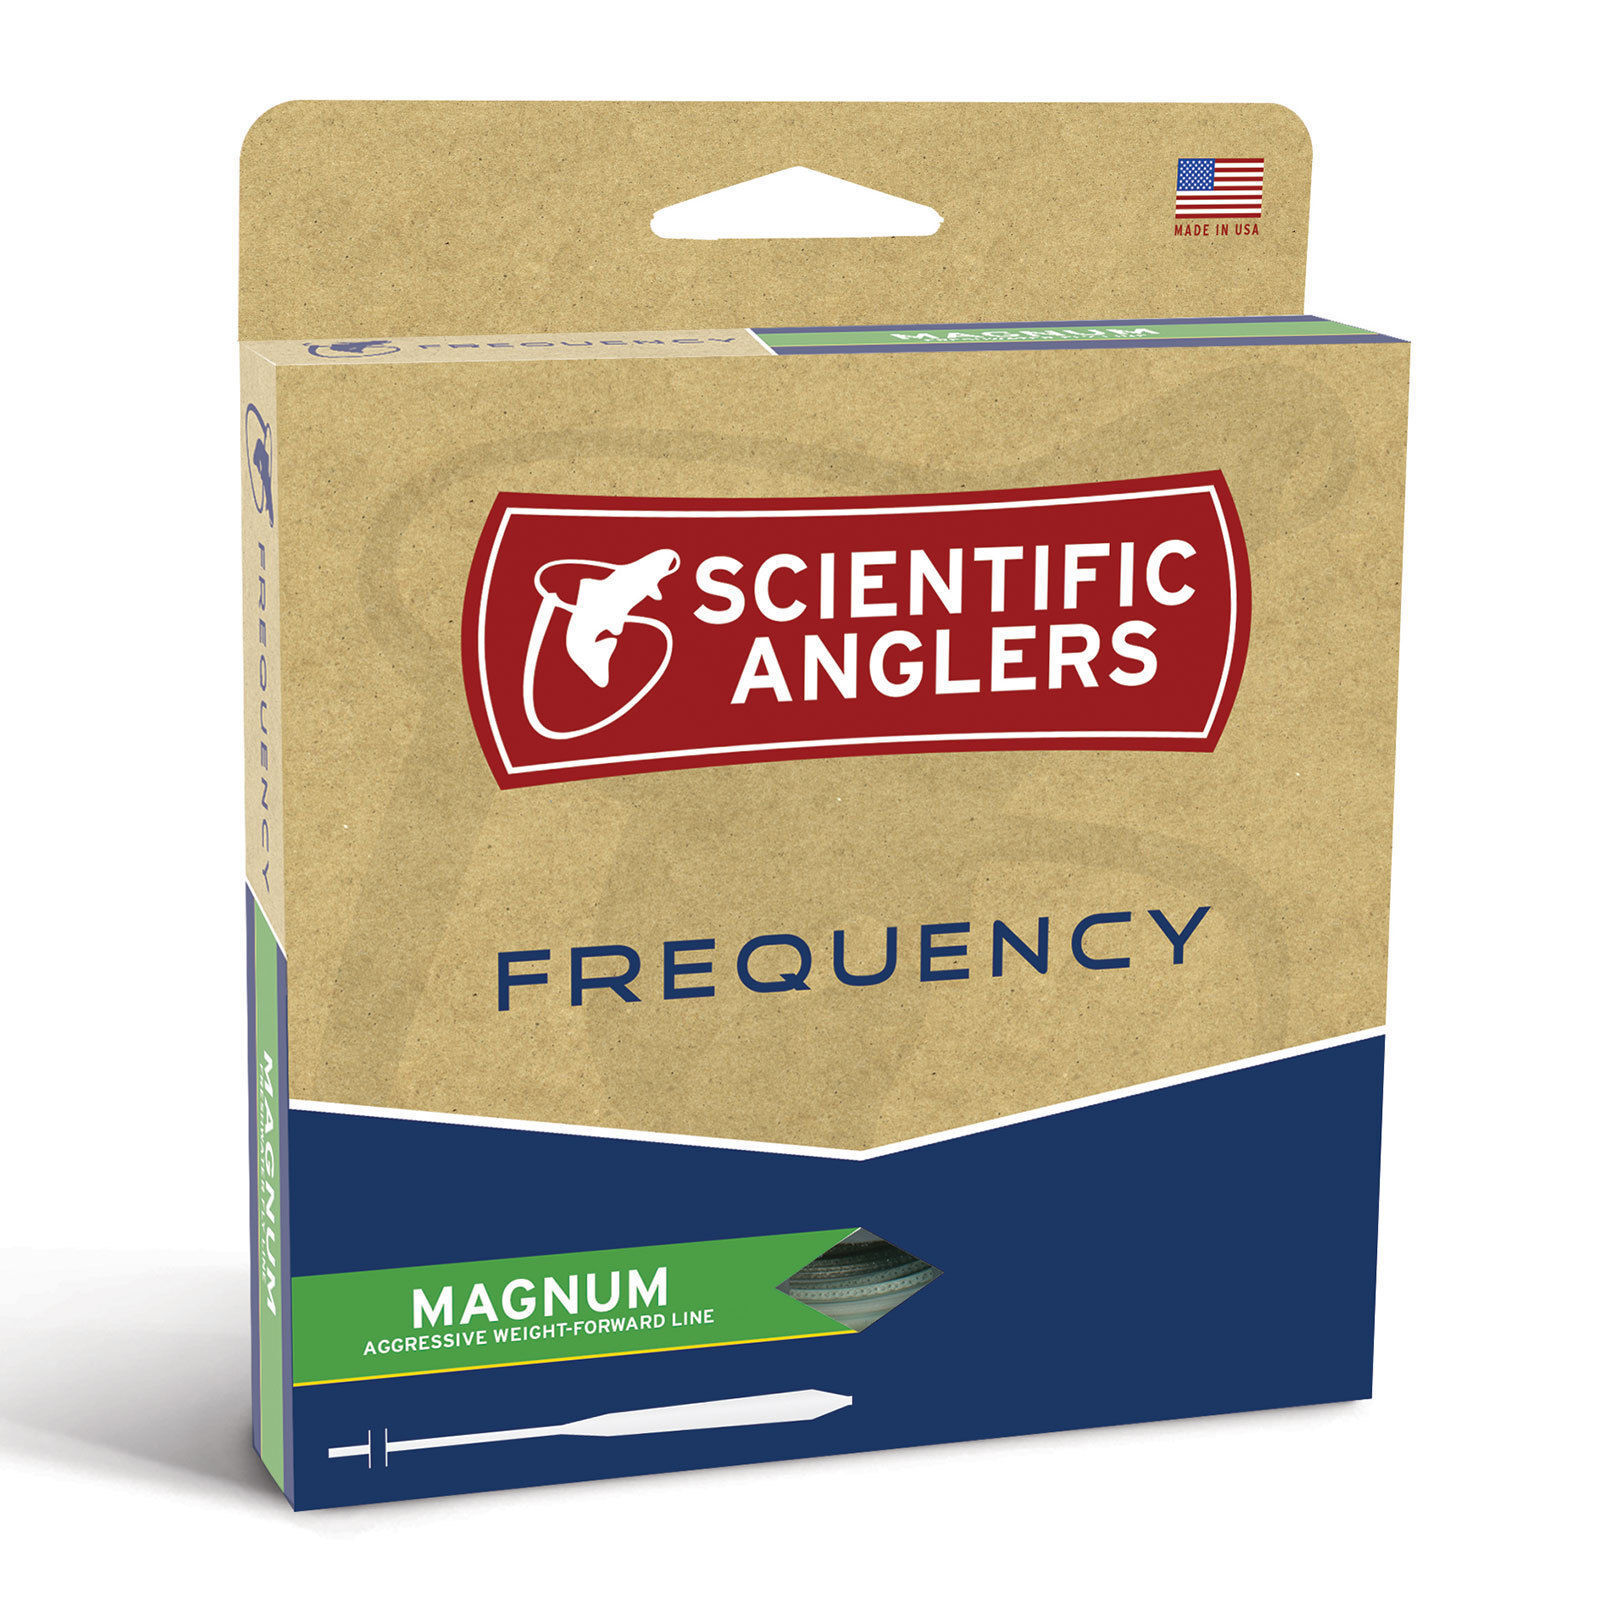 SCIENTIFIC ANGLERS FREQUENCY MAGNUM GLOW IN THE DARK WF-5-F WEIGHT FLY LINE